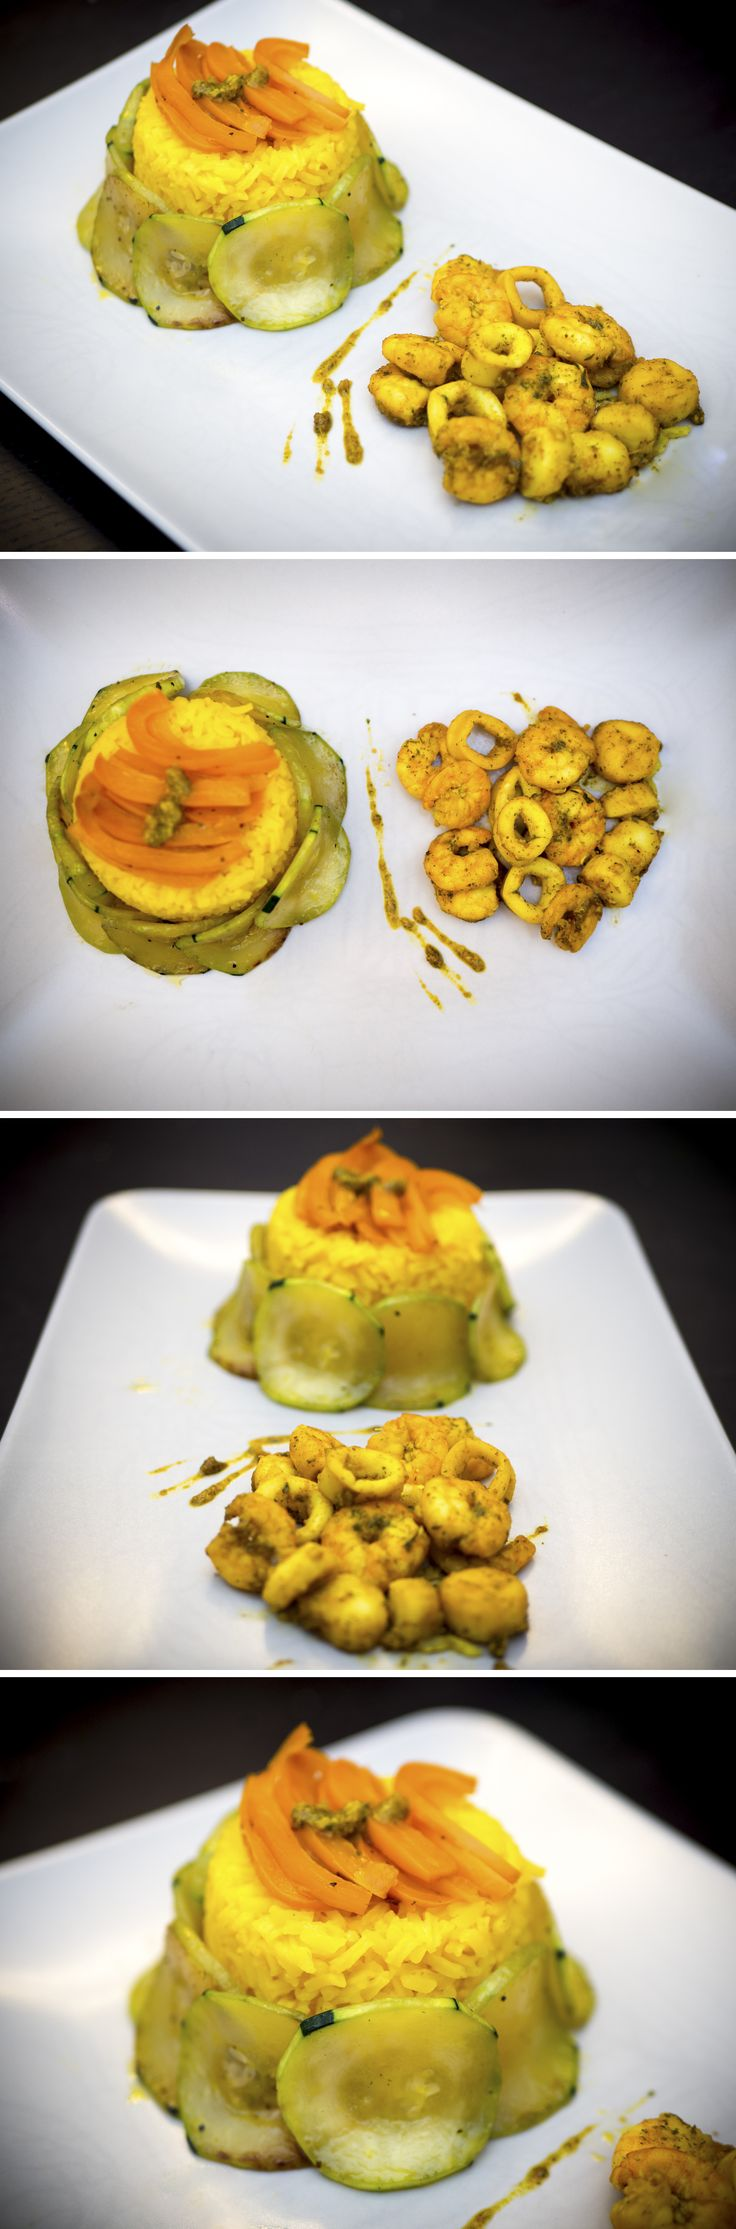 curcuma rice tower with zucchini walls topped with orange pepper along with seafood curry!!